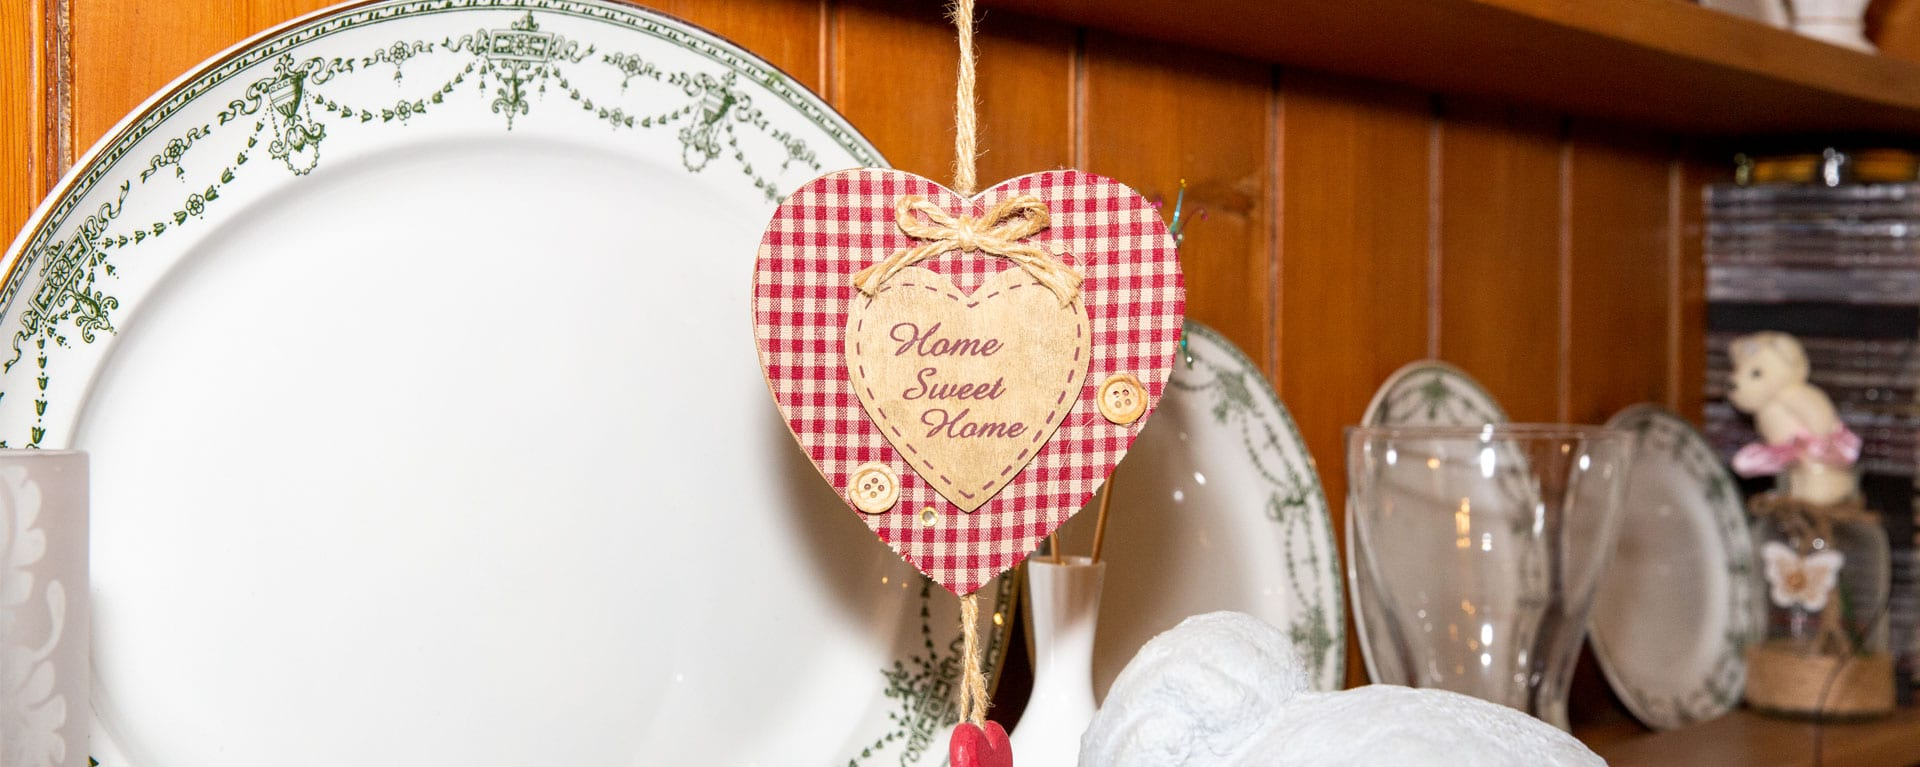 Home sweet home decoration in the care homes dining room